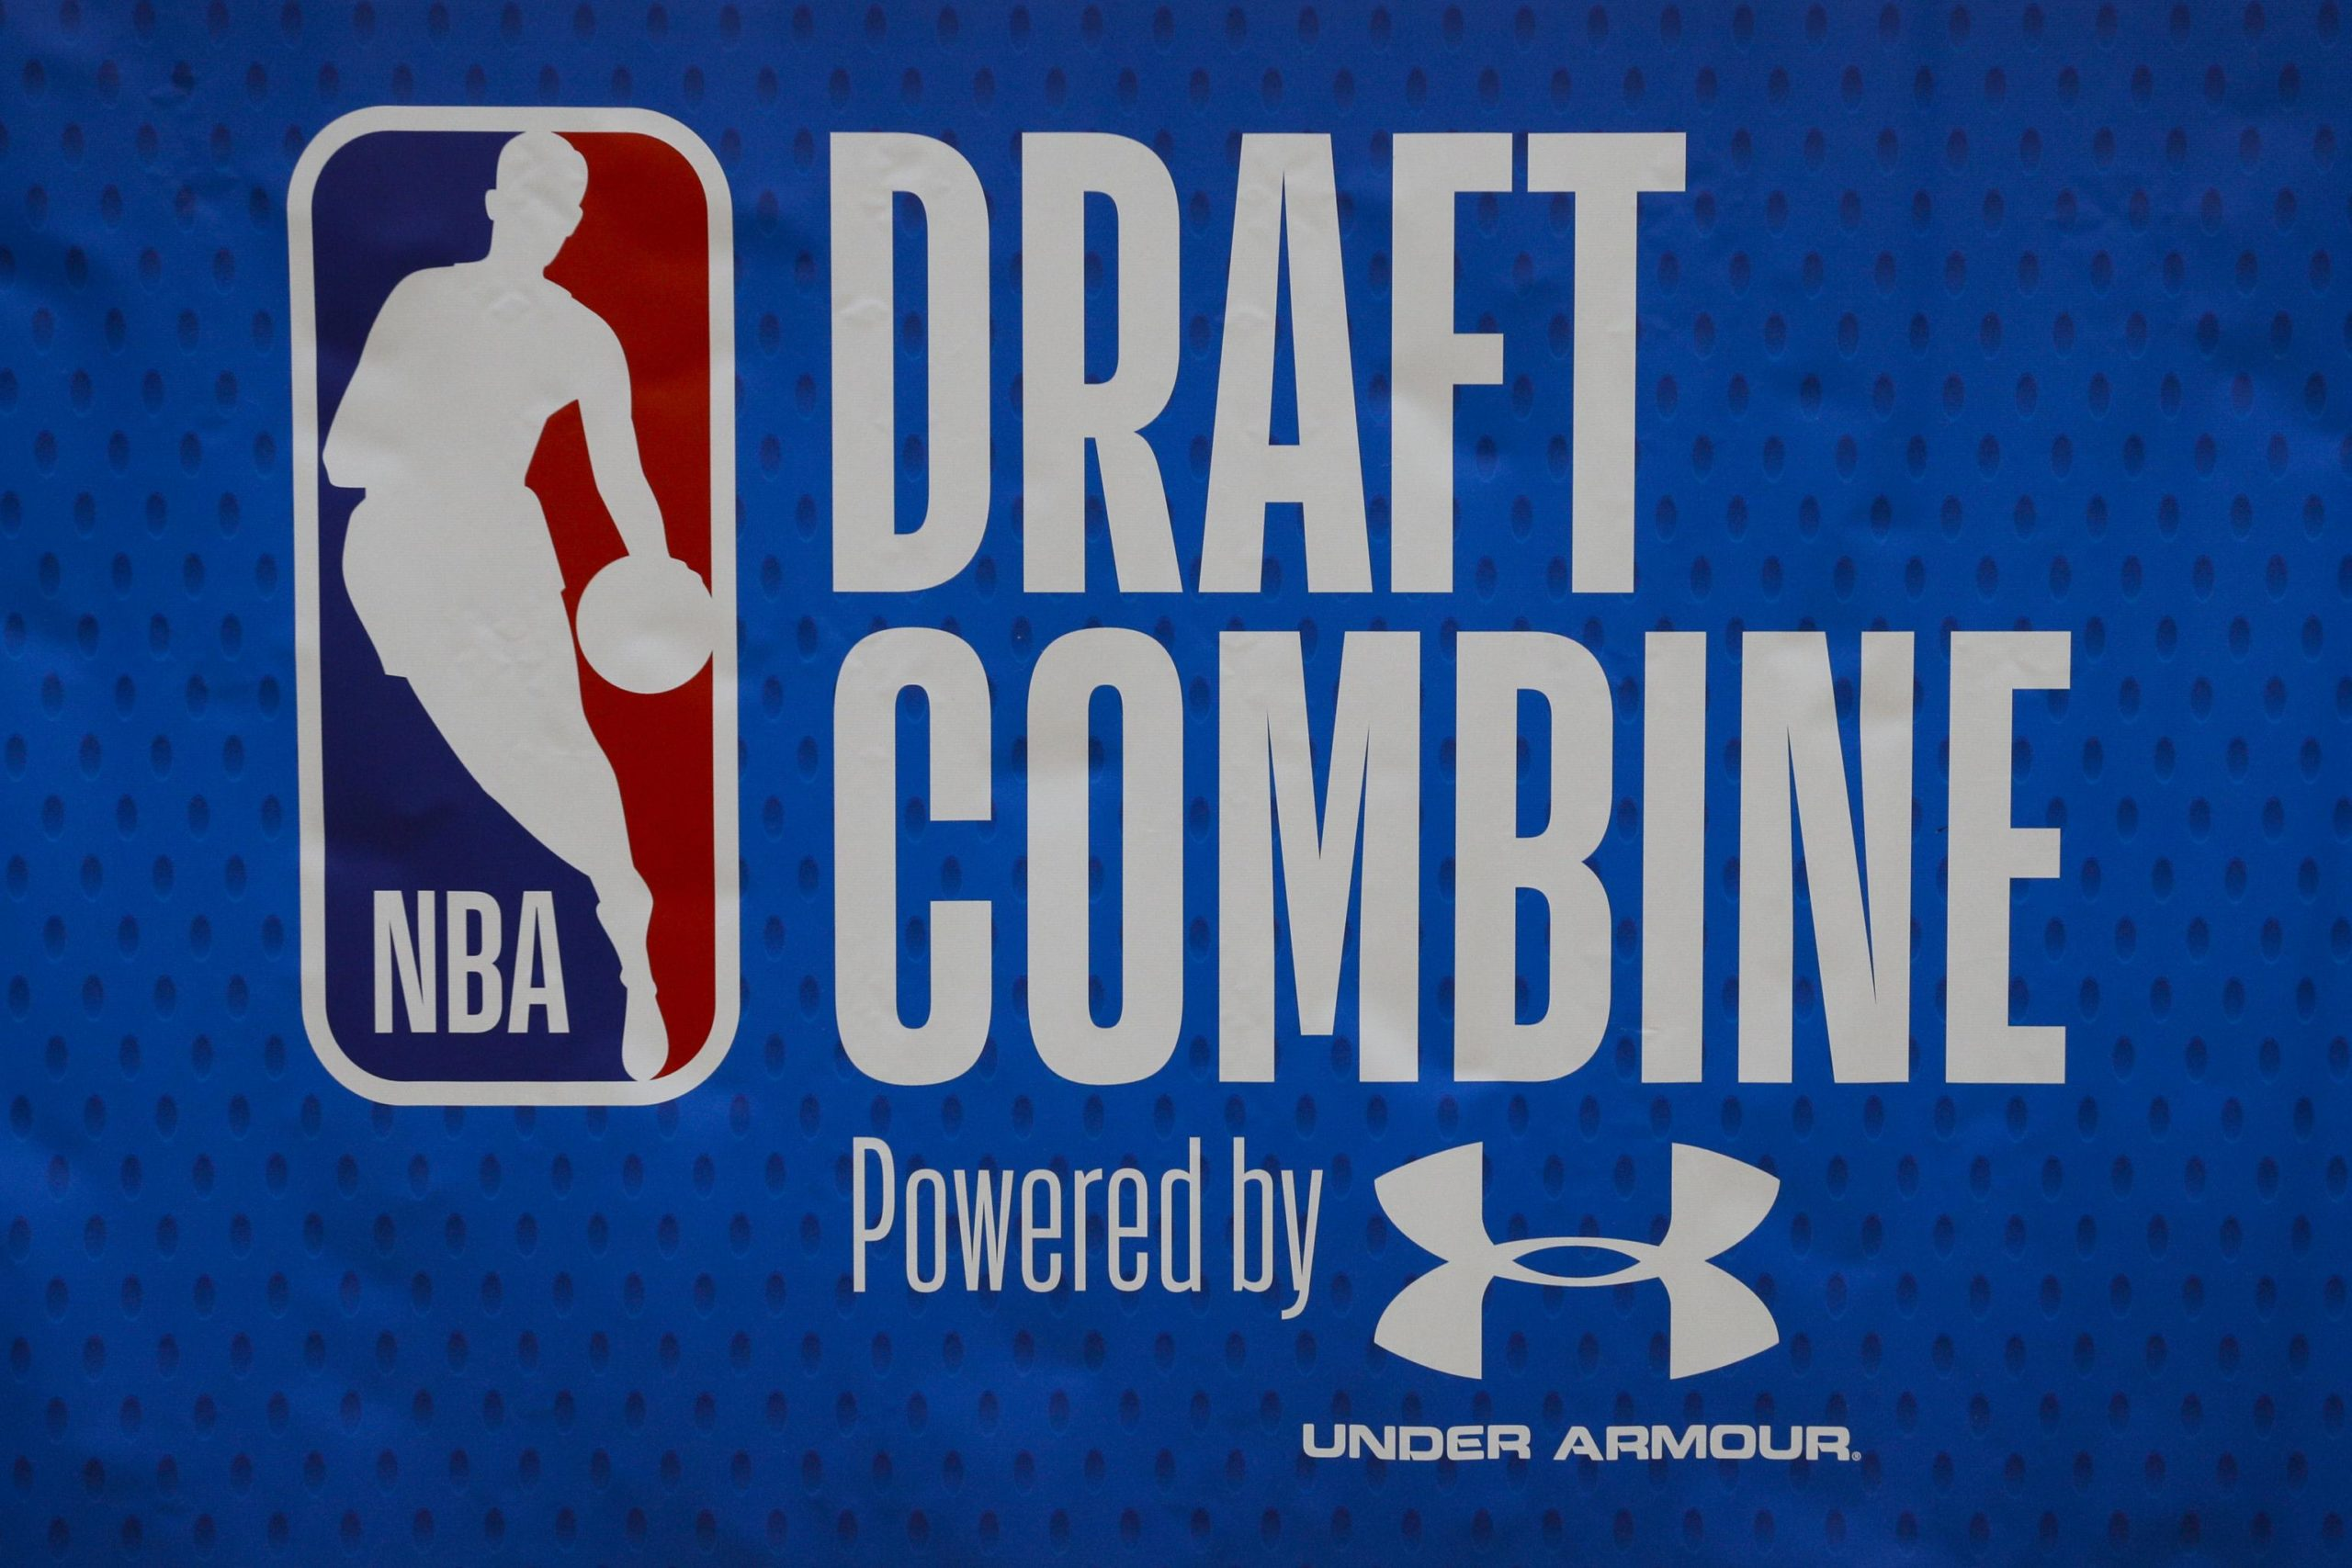 The 2020 NBA Draft Combine is Another Event on Hold in 2020